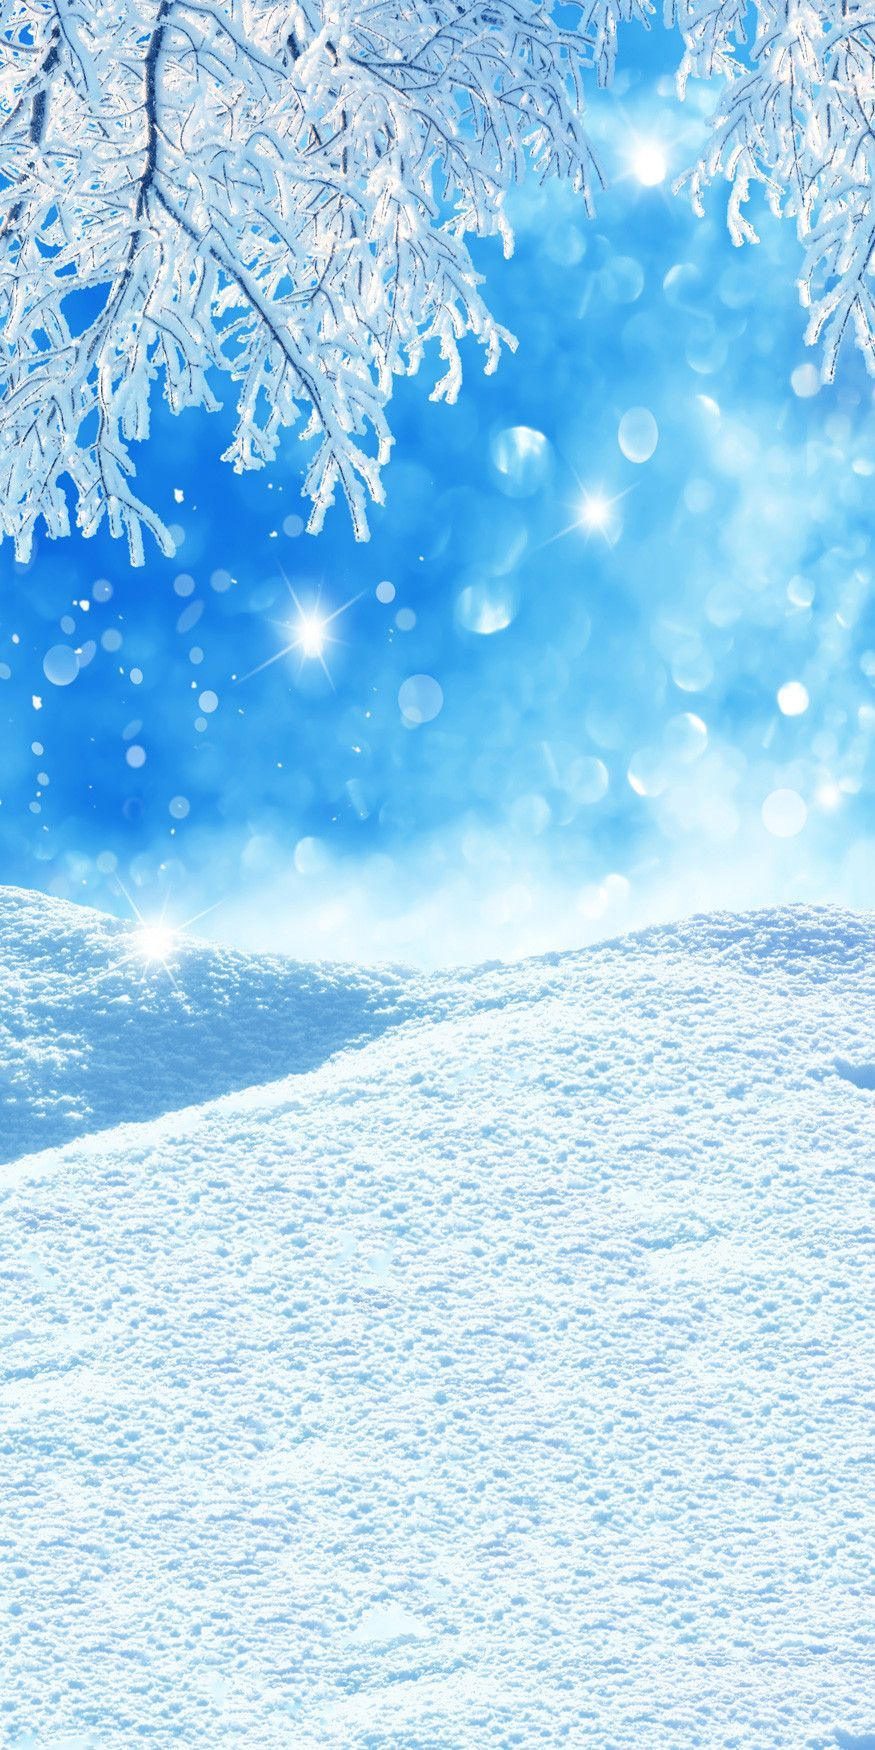 Winter Backgrounds Best Desktop Photos Full HD Wide Desktop